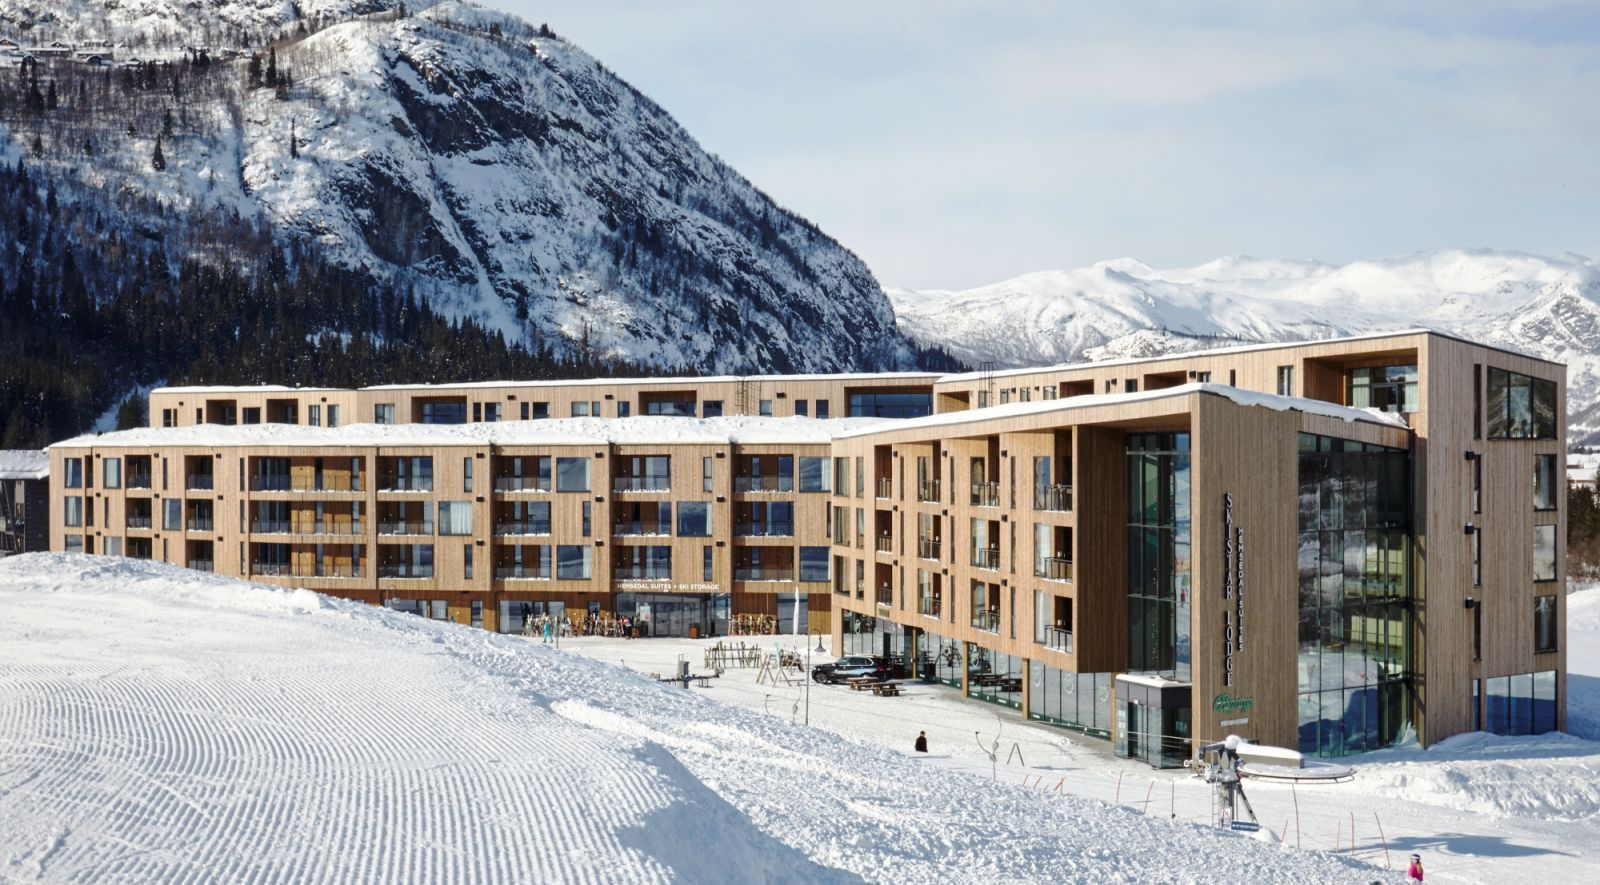 Centrally Located In Hemsedal Norway S Top Ski Resort And Home To The Highest Ski Lift In Scandinavia Hemsedal Su Architecture Details Architecture Ski Hotel